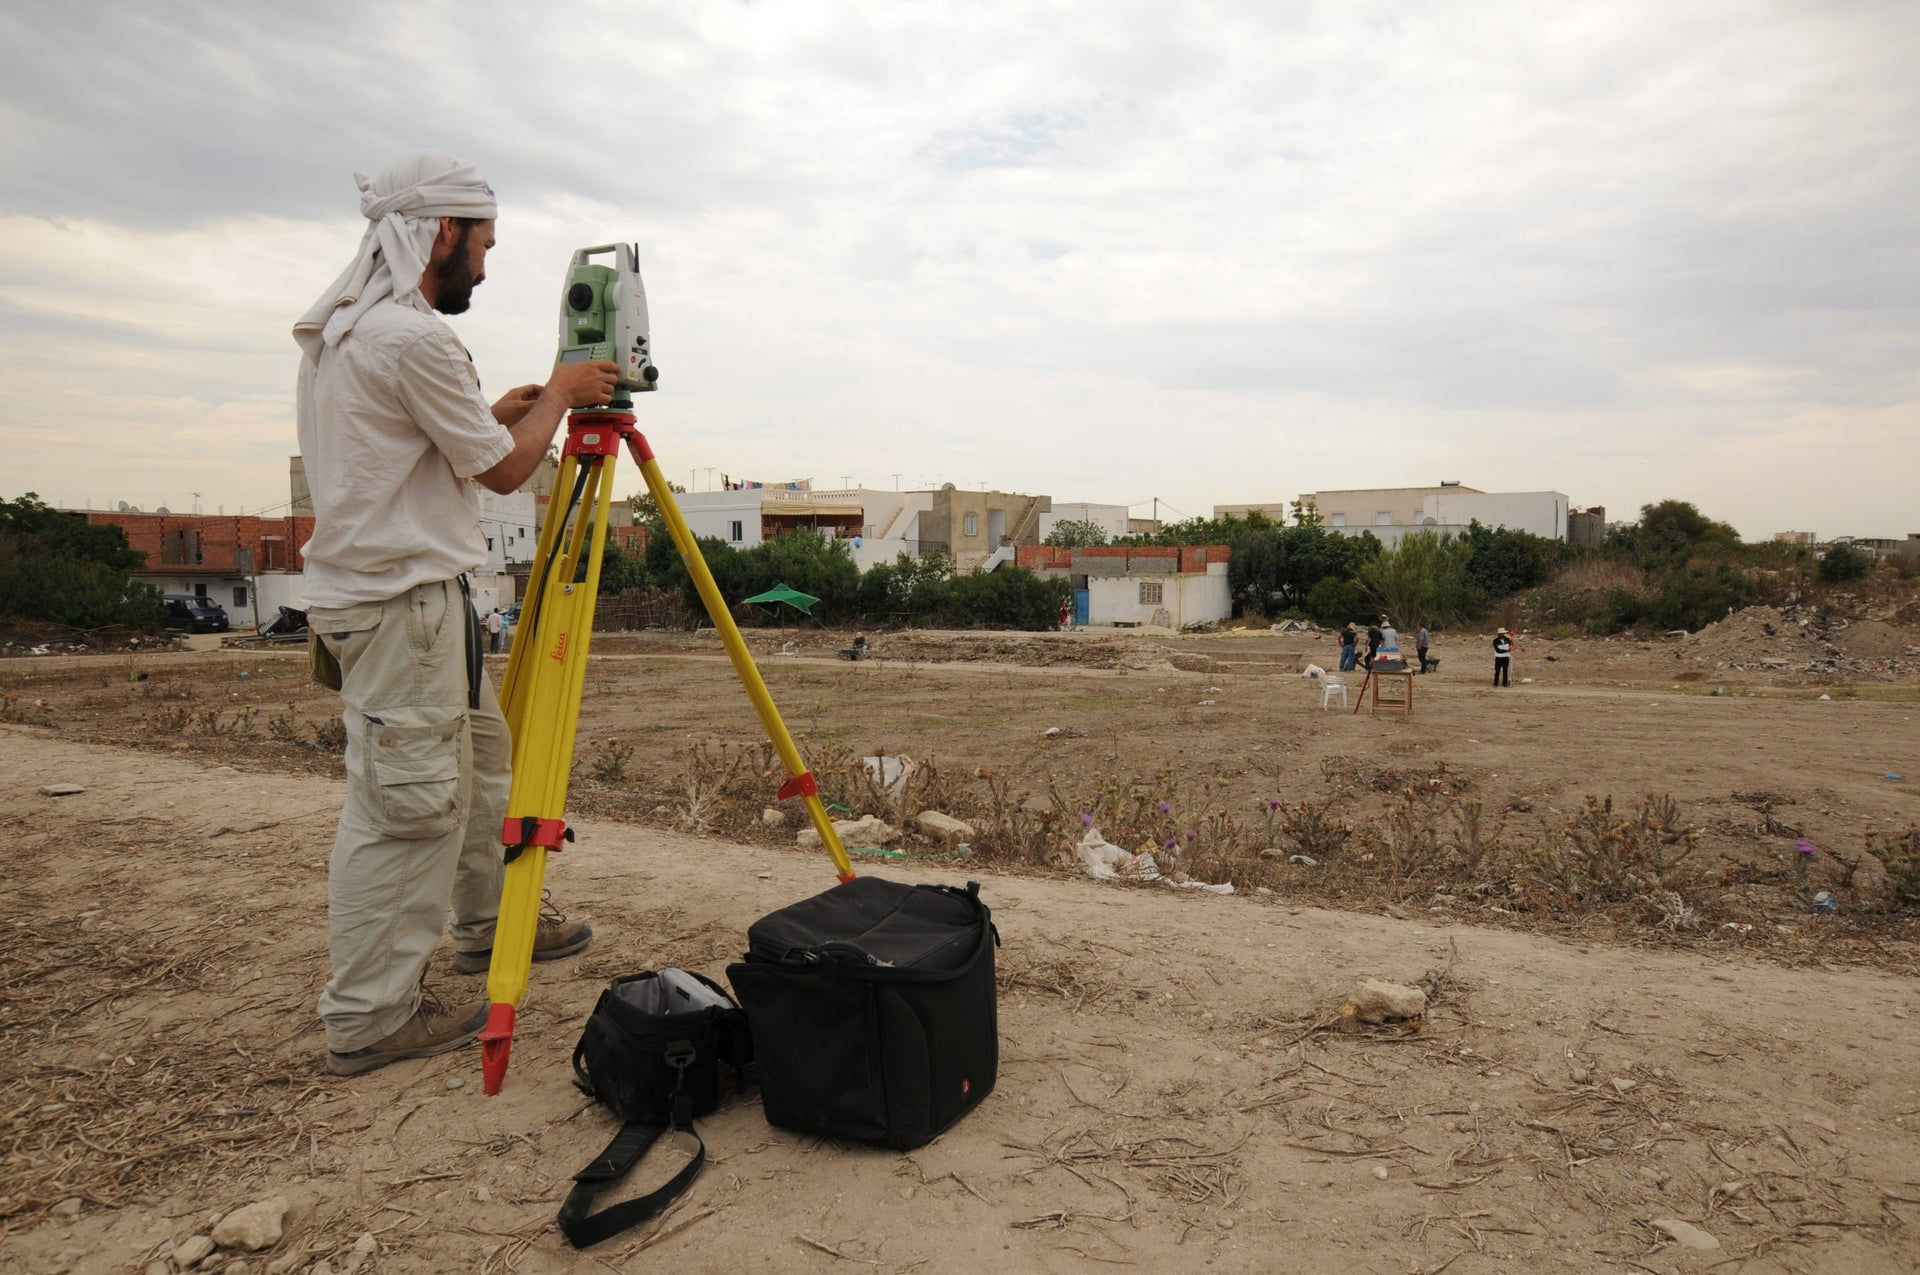 AT the Carthage circus dig: Iván Fumadó Ortega of Aix-Marseille University performing topographical measurements at the circus